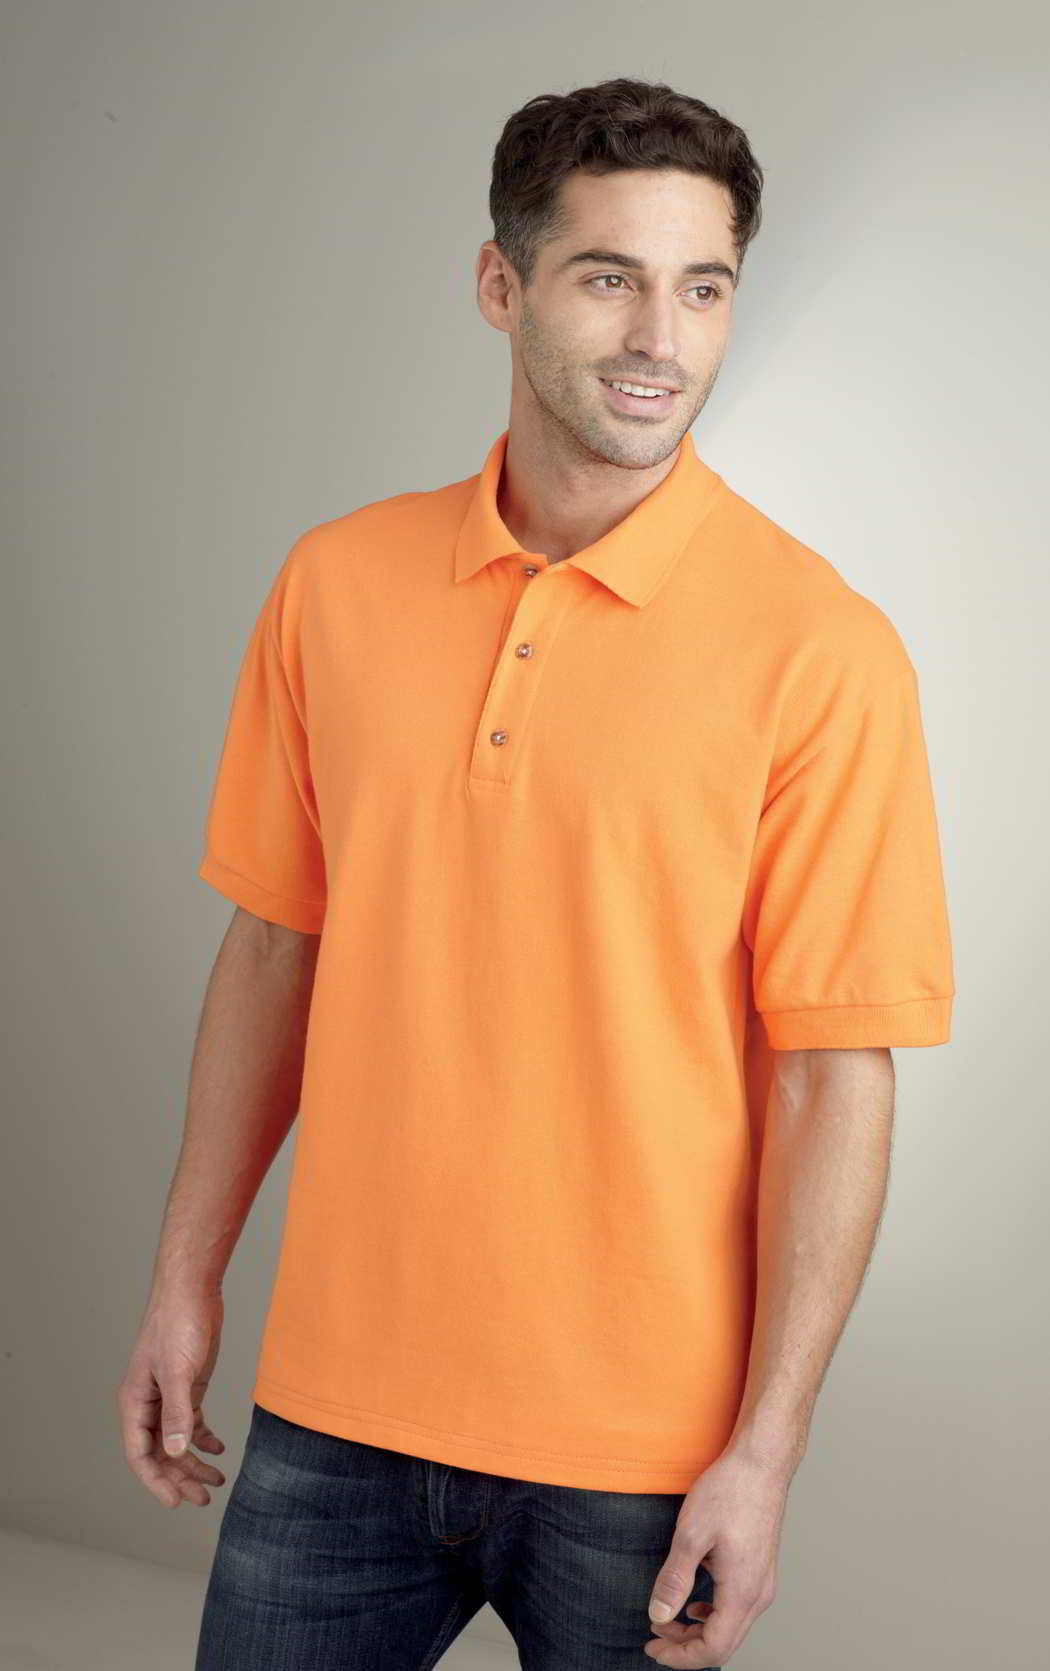 gildan/3800 polo shirt/3800 top photo n